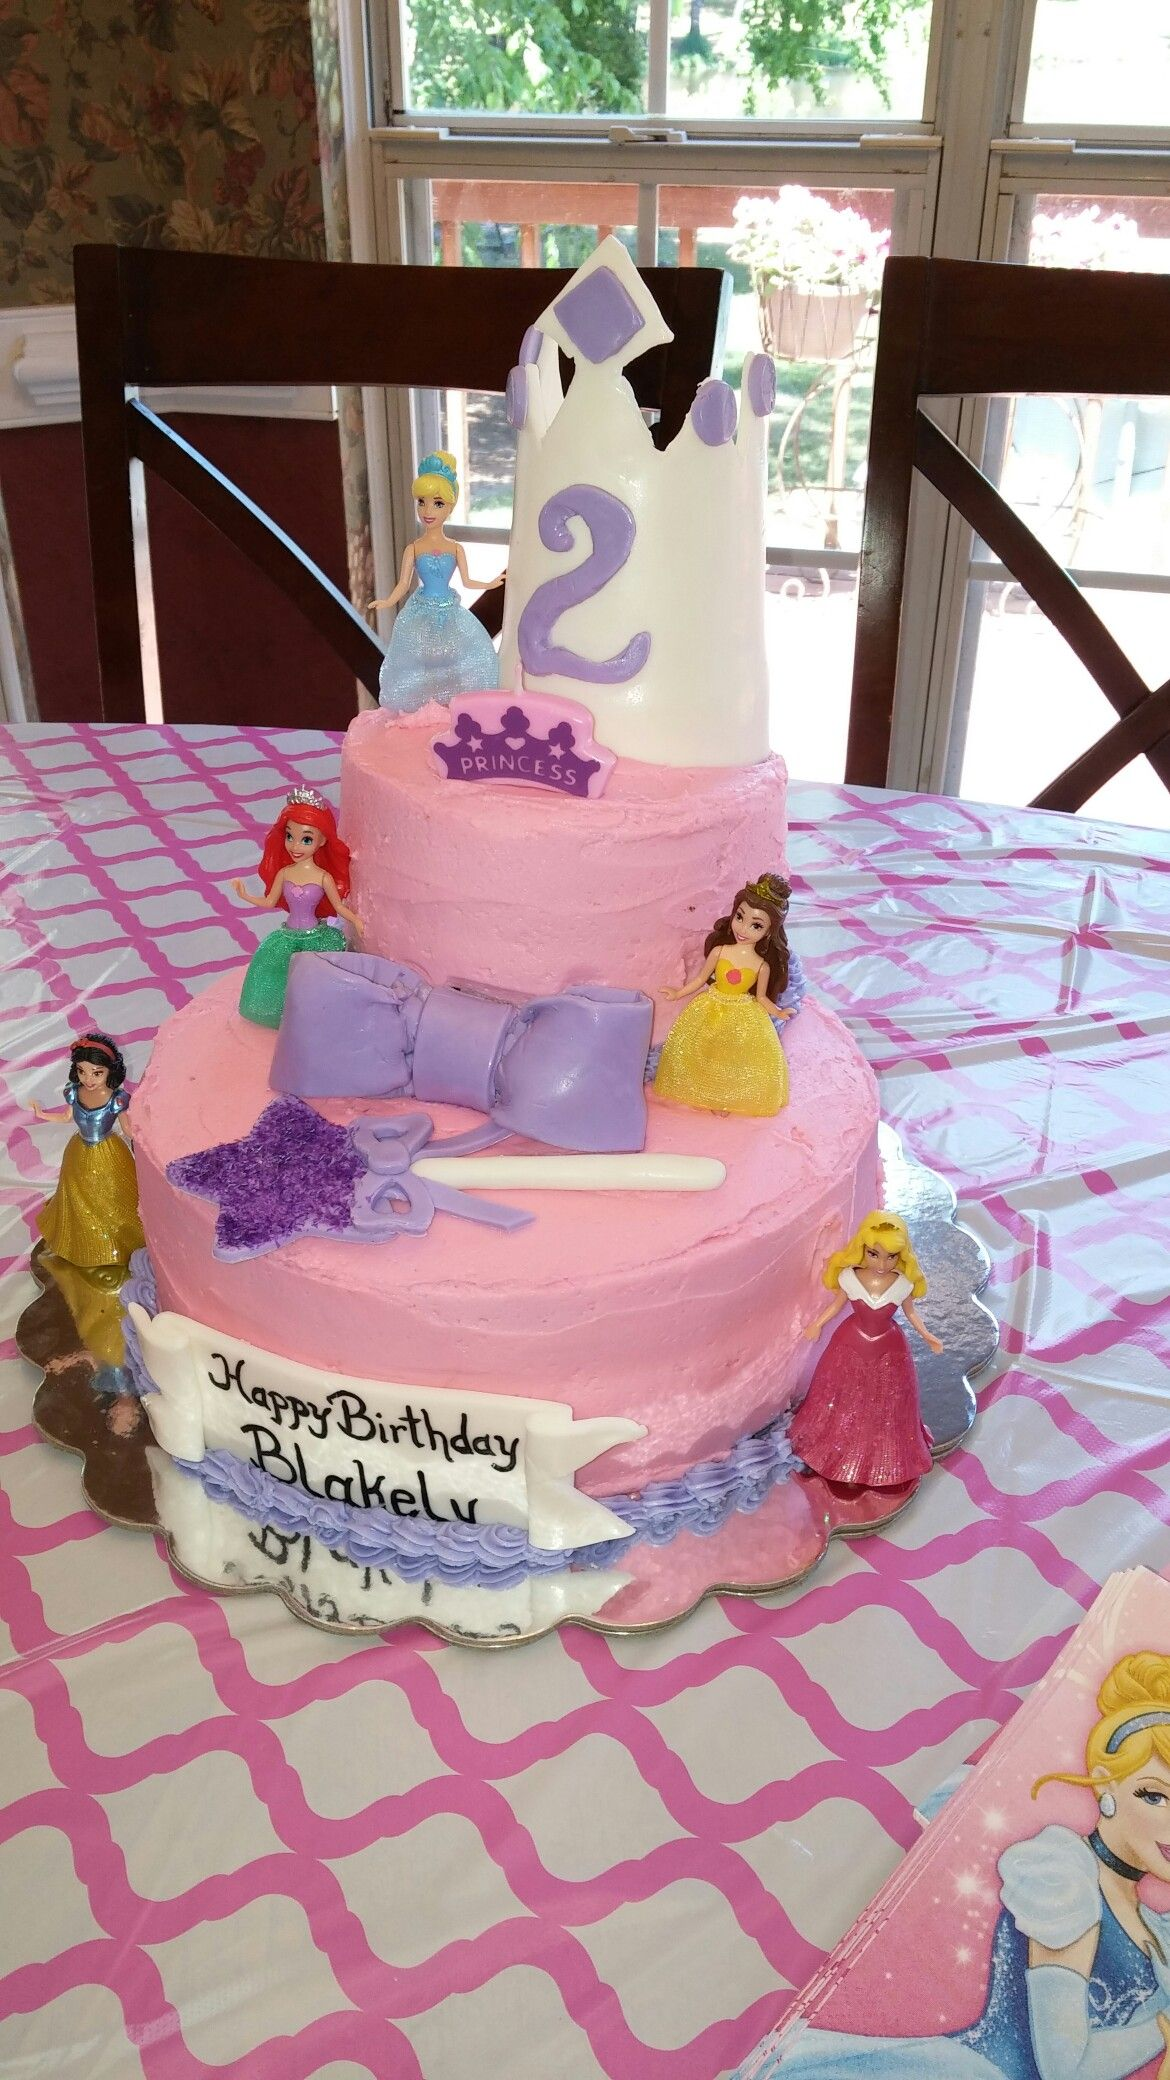 Blakelyus nd bday cake cakes by me pinterest